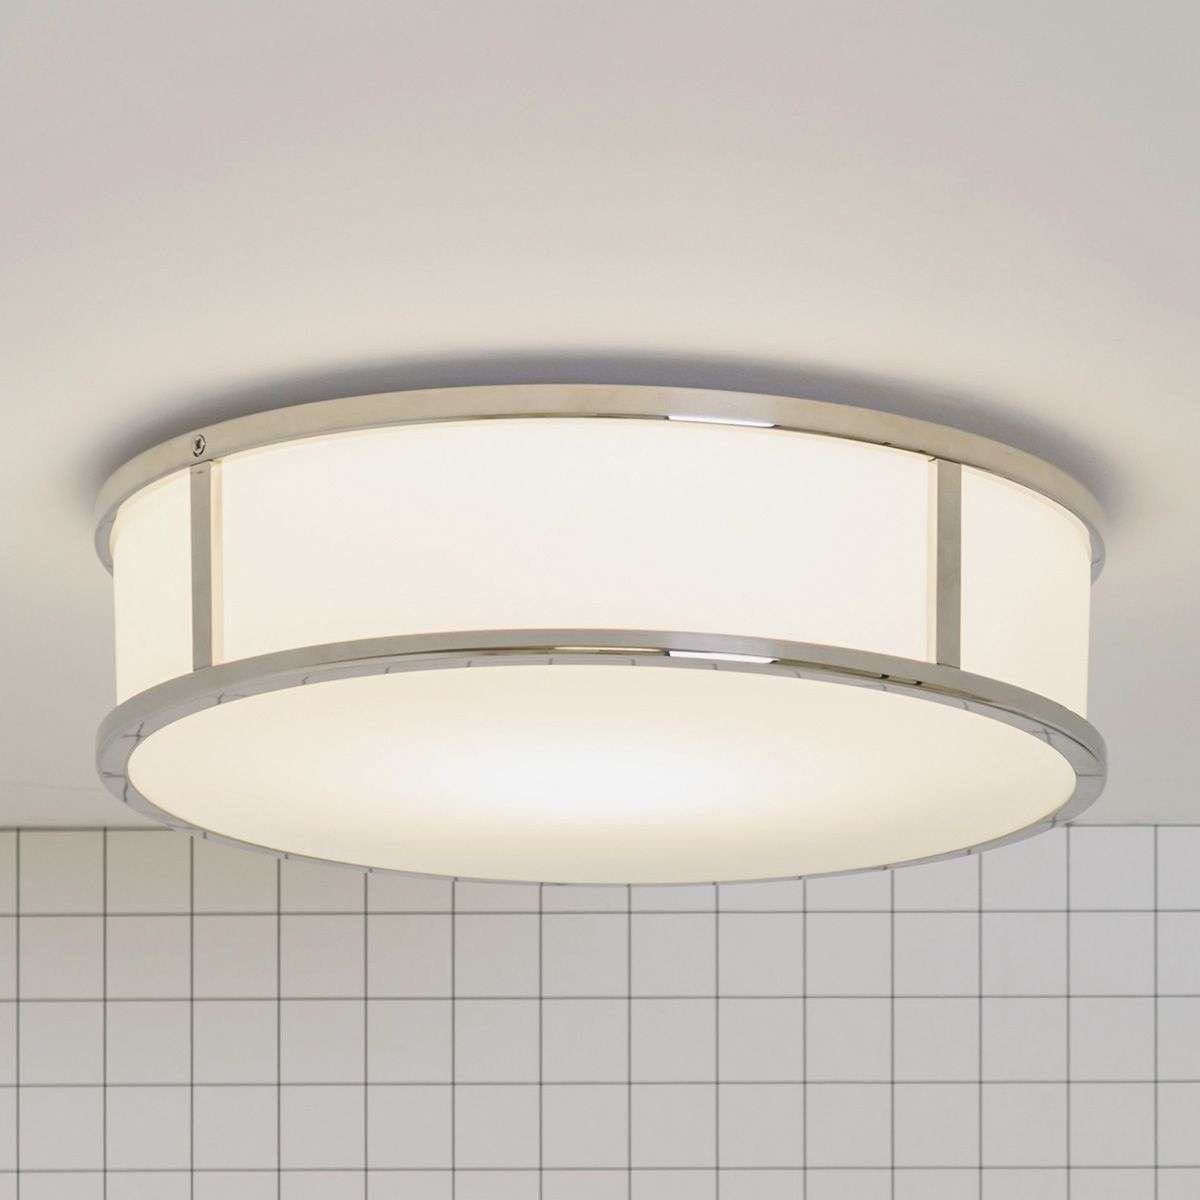 Mashiko Round 300 Bathroom Ceiling Light | Lights.ie